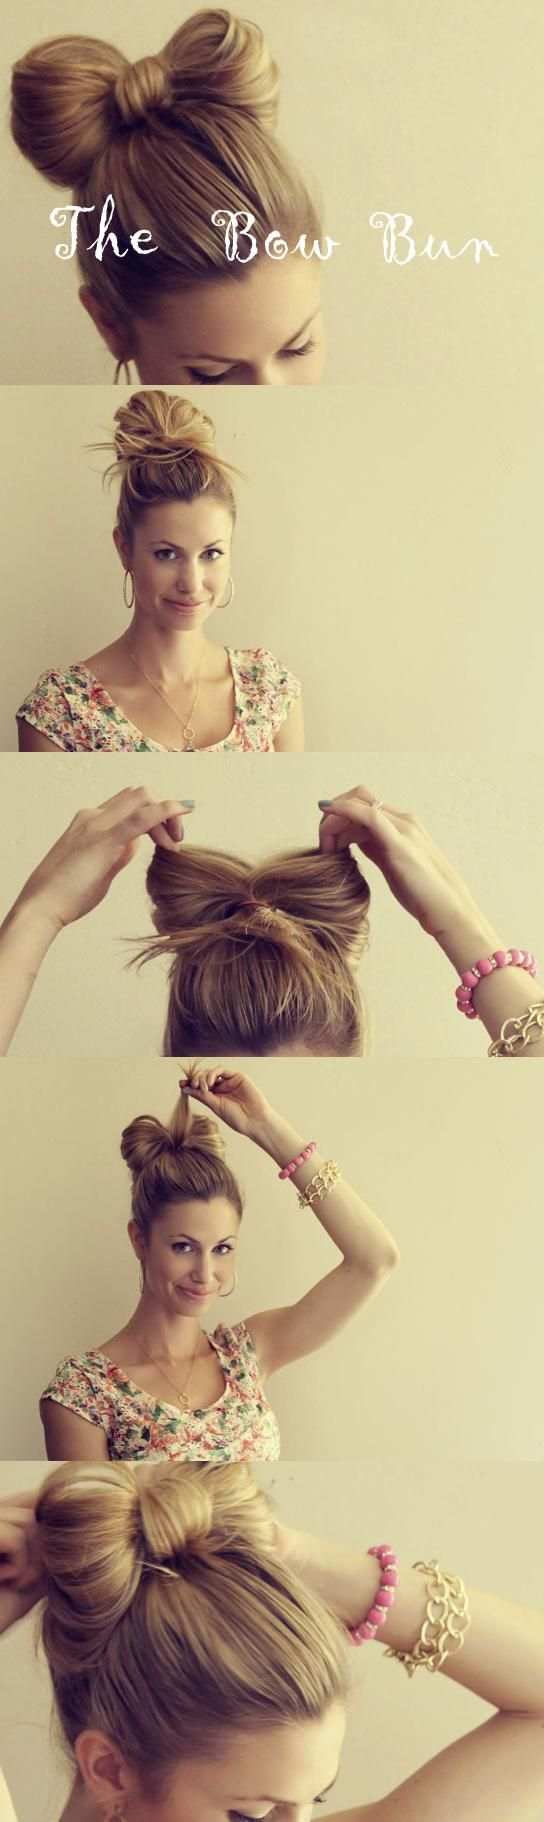 Love this simple bow bun! Can't wait to try it myself :)